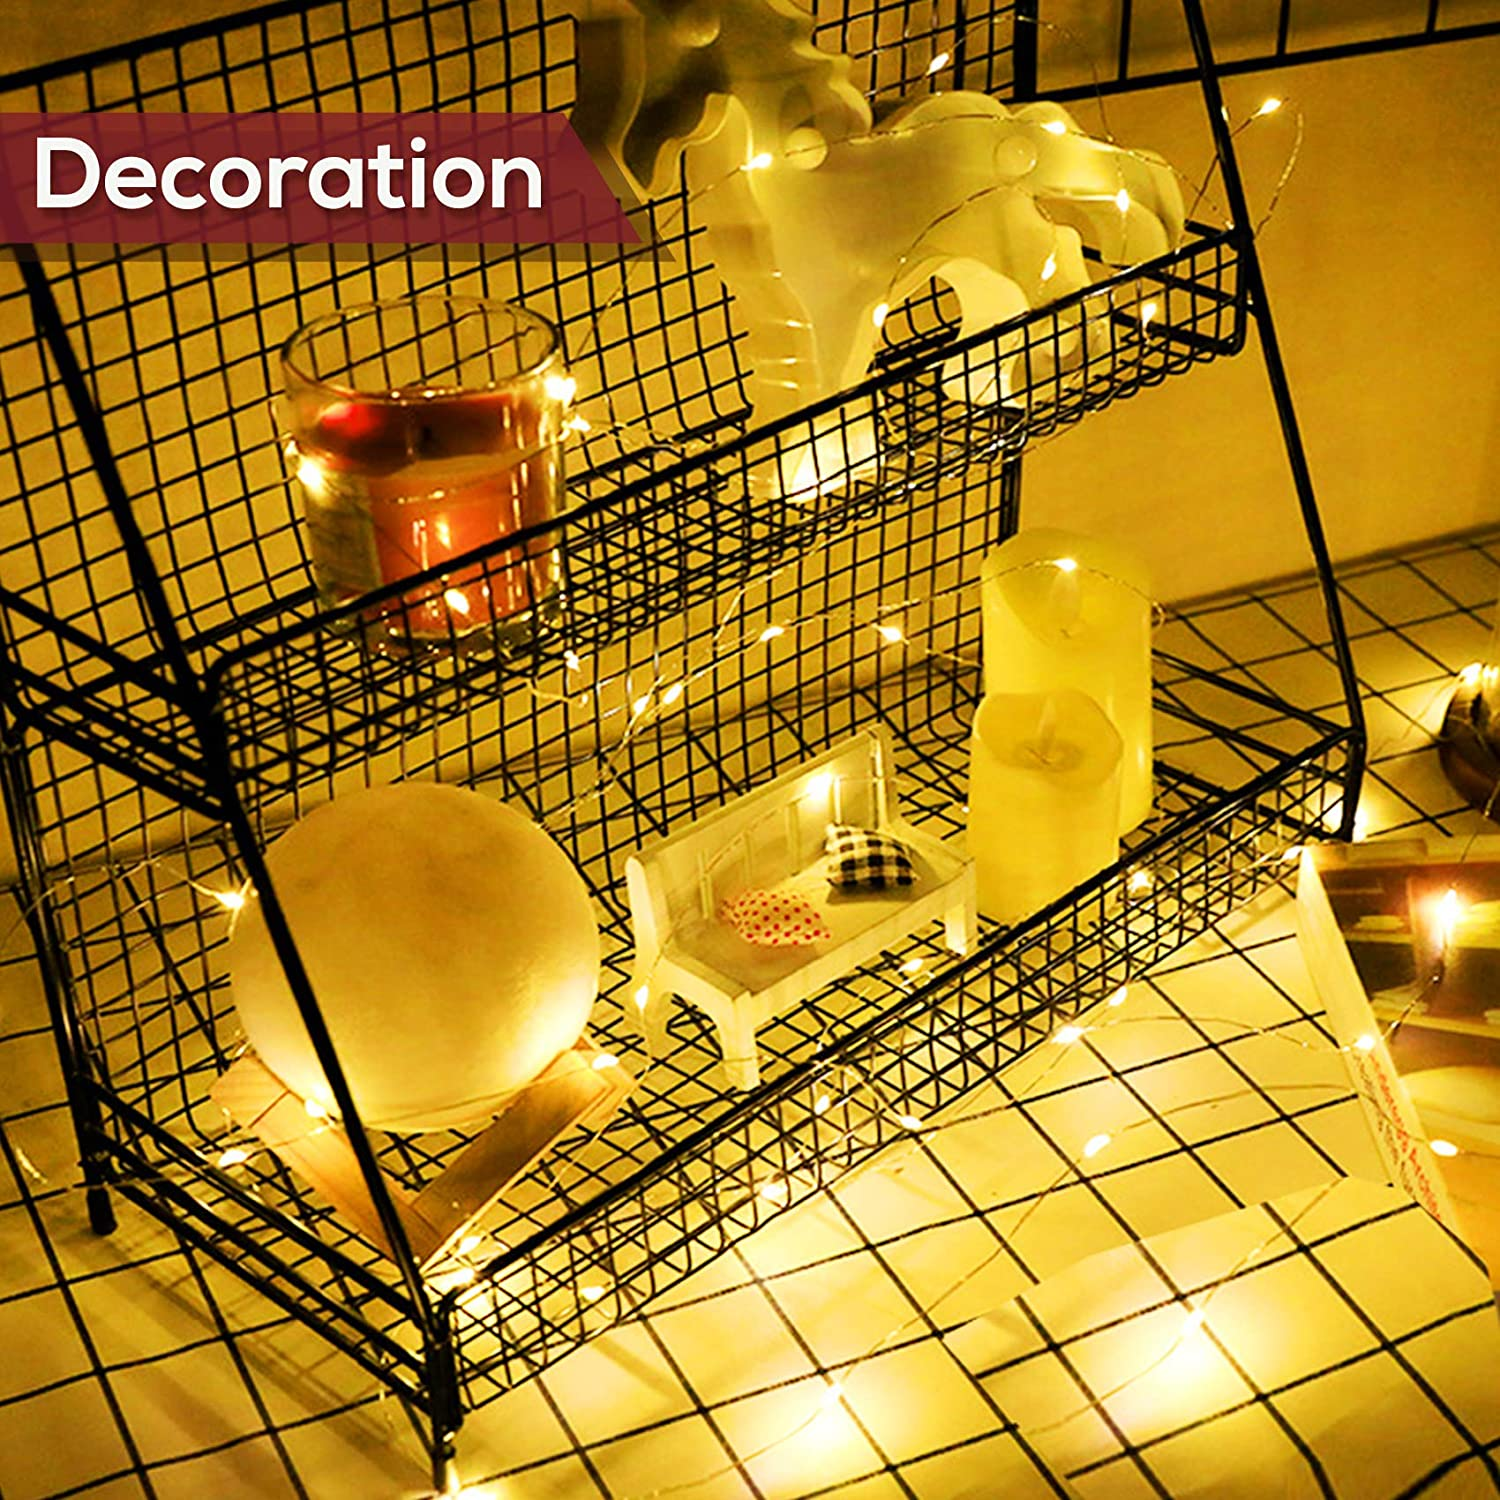 H411c3368f9a84b539d2e15e79e294228l - Led Fairy Lights Copper Wire String 1/2/5/10M Holiday Outdoor Lamp Garland Luces For Christmas Tree Wedding Party Decoration